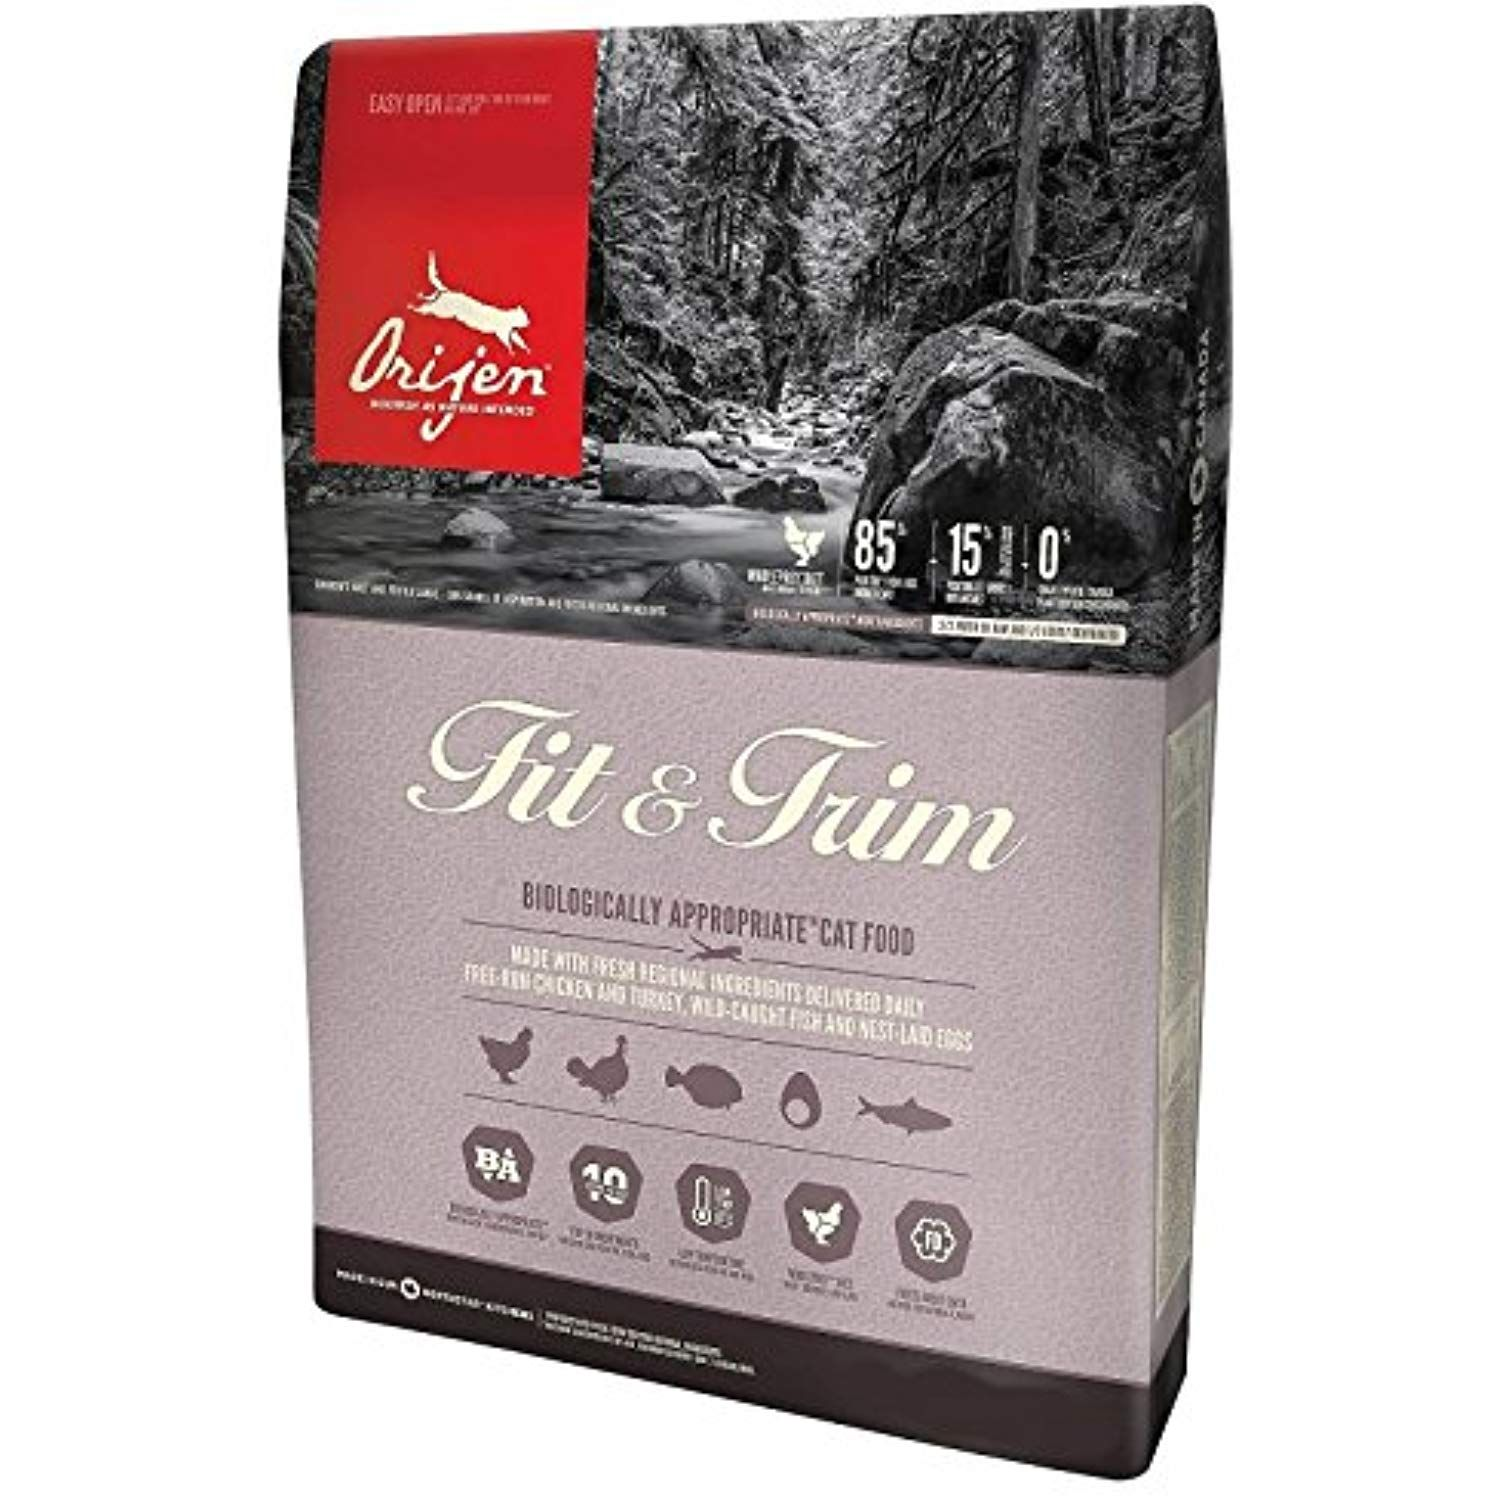 Orijen Fit drydogfood (With images) Dog food recipes